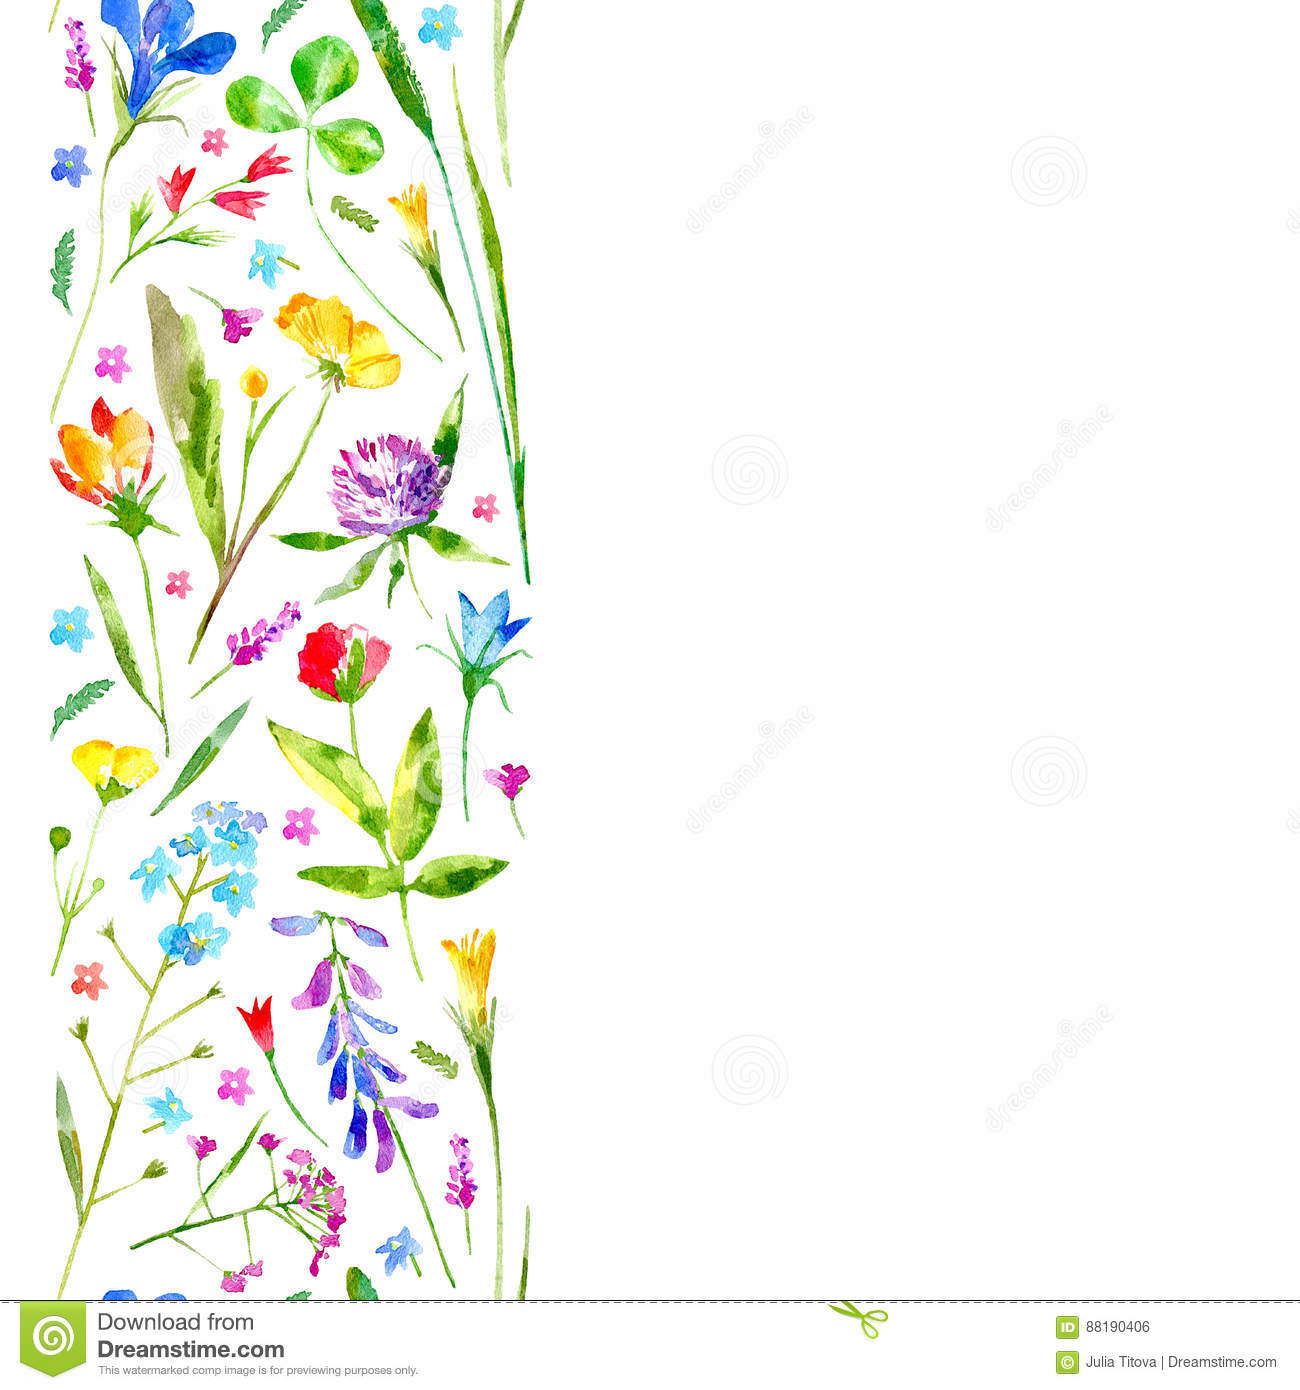 floral border of a wild flowers and herbs on a white background rh dreamstime com Hawaiian Flower Border Clip Art Hawaiian Flower Border Clip Art